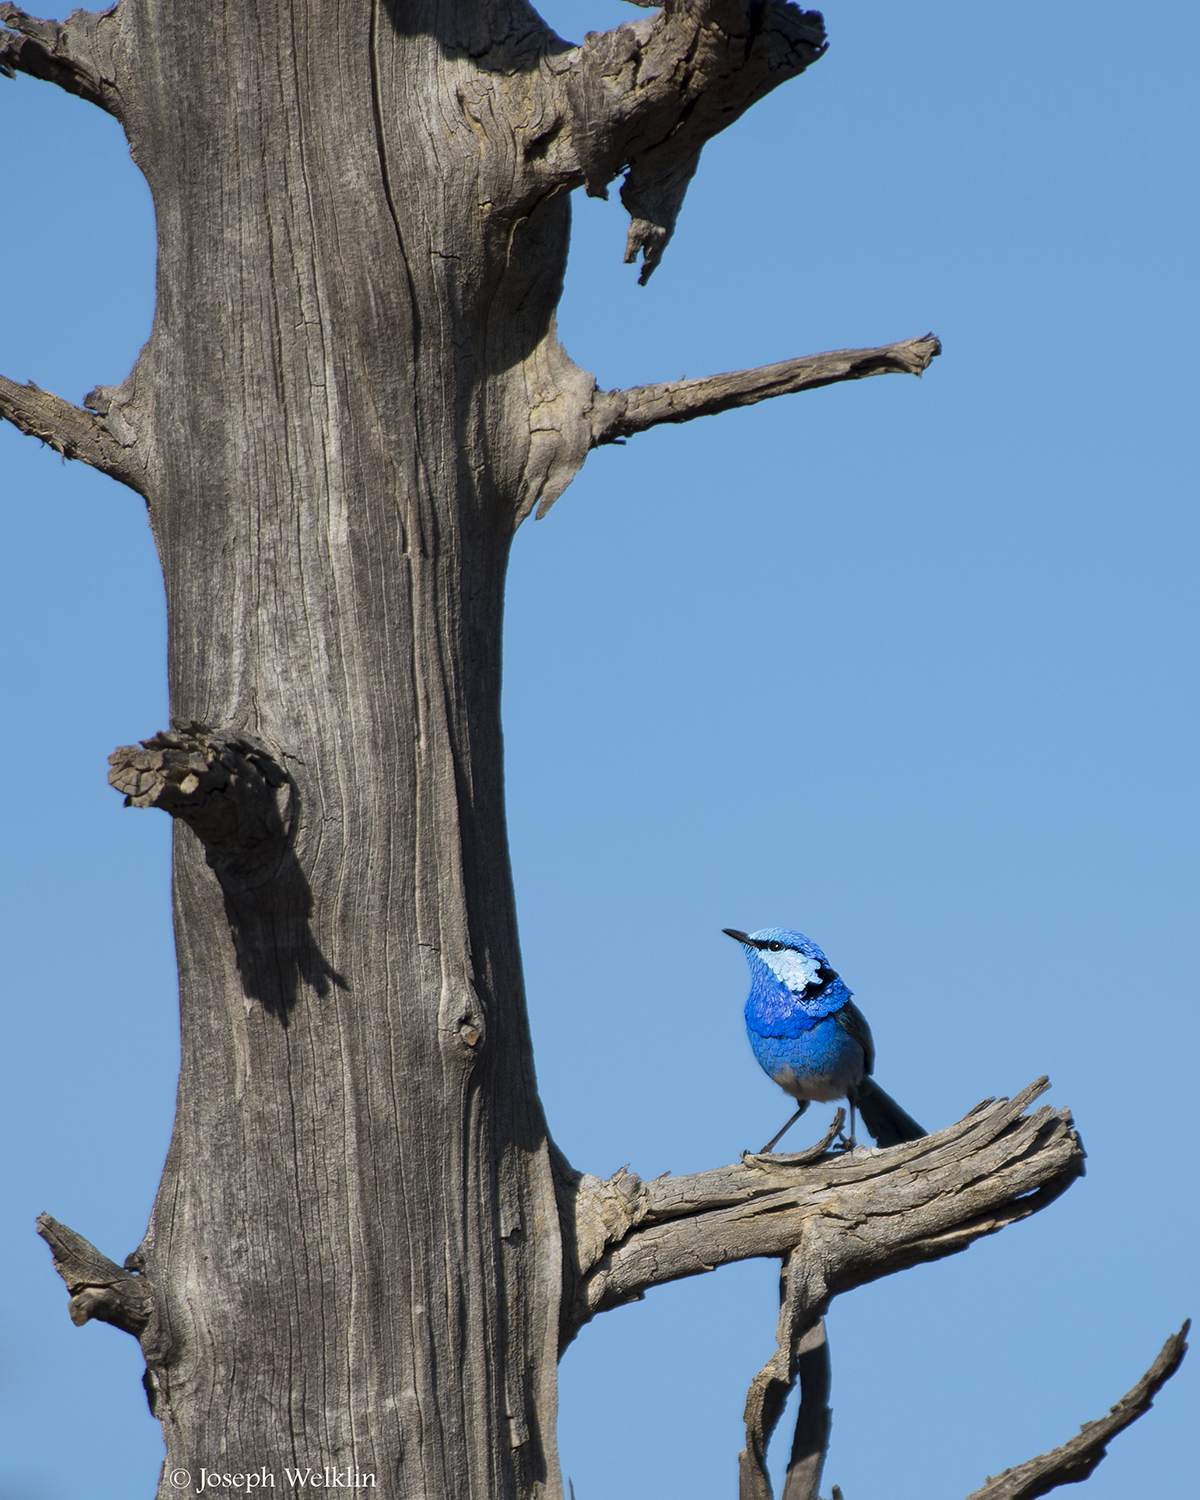 Splendid Fairy-wren. He jumped up to this high perch, belted out a few songs, then dropped back out of site.Photographed in September in Western Queensland, Australia.